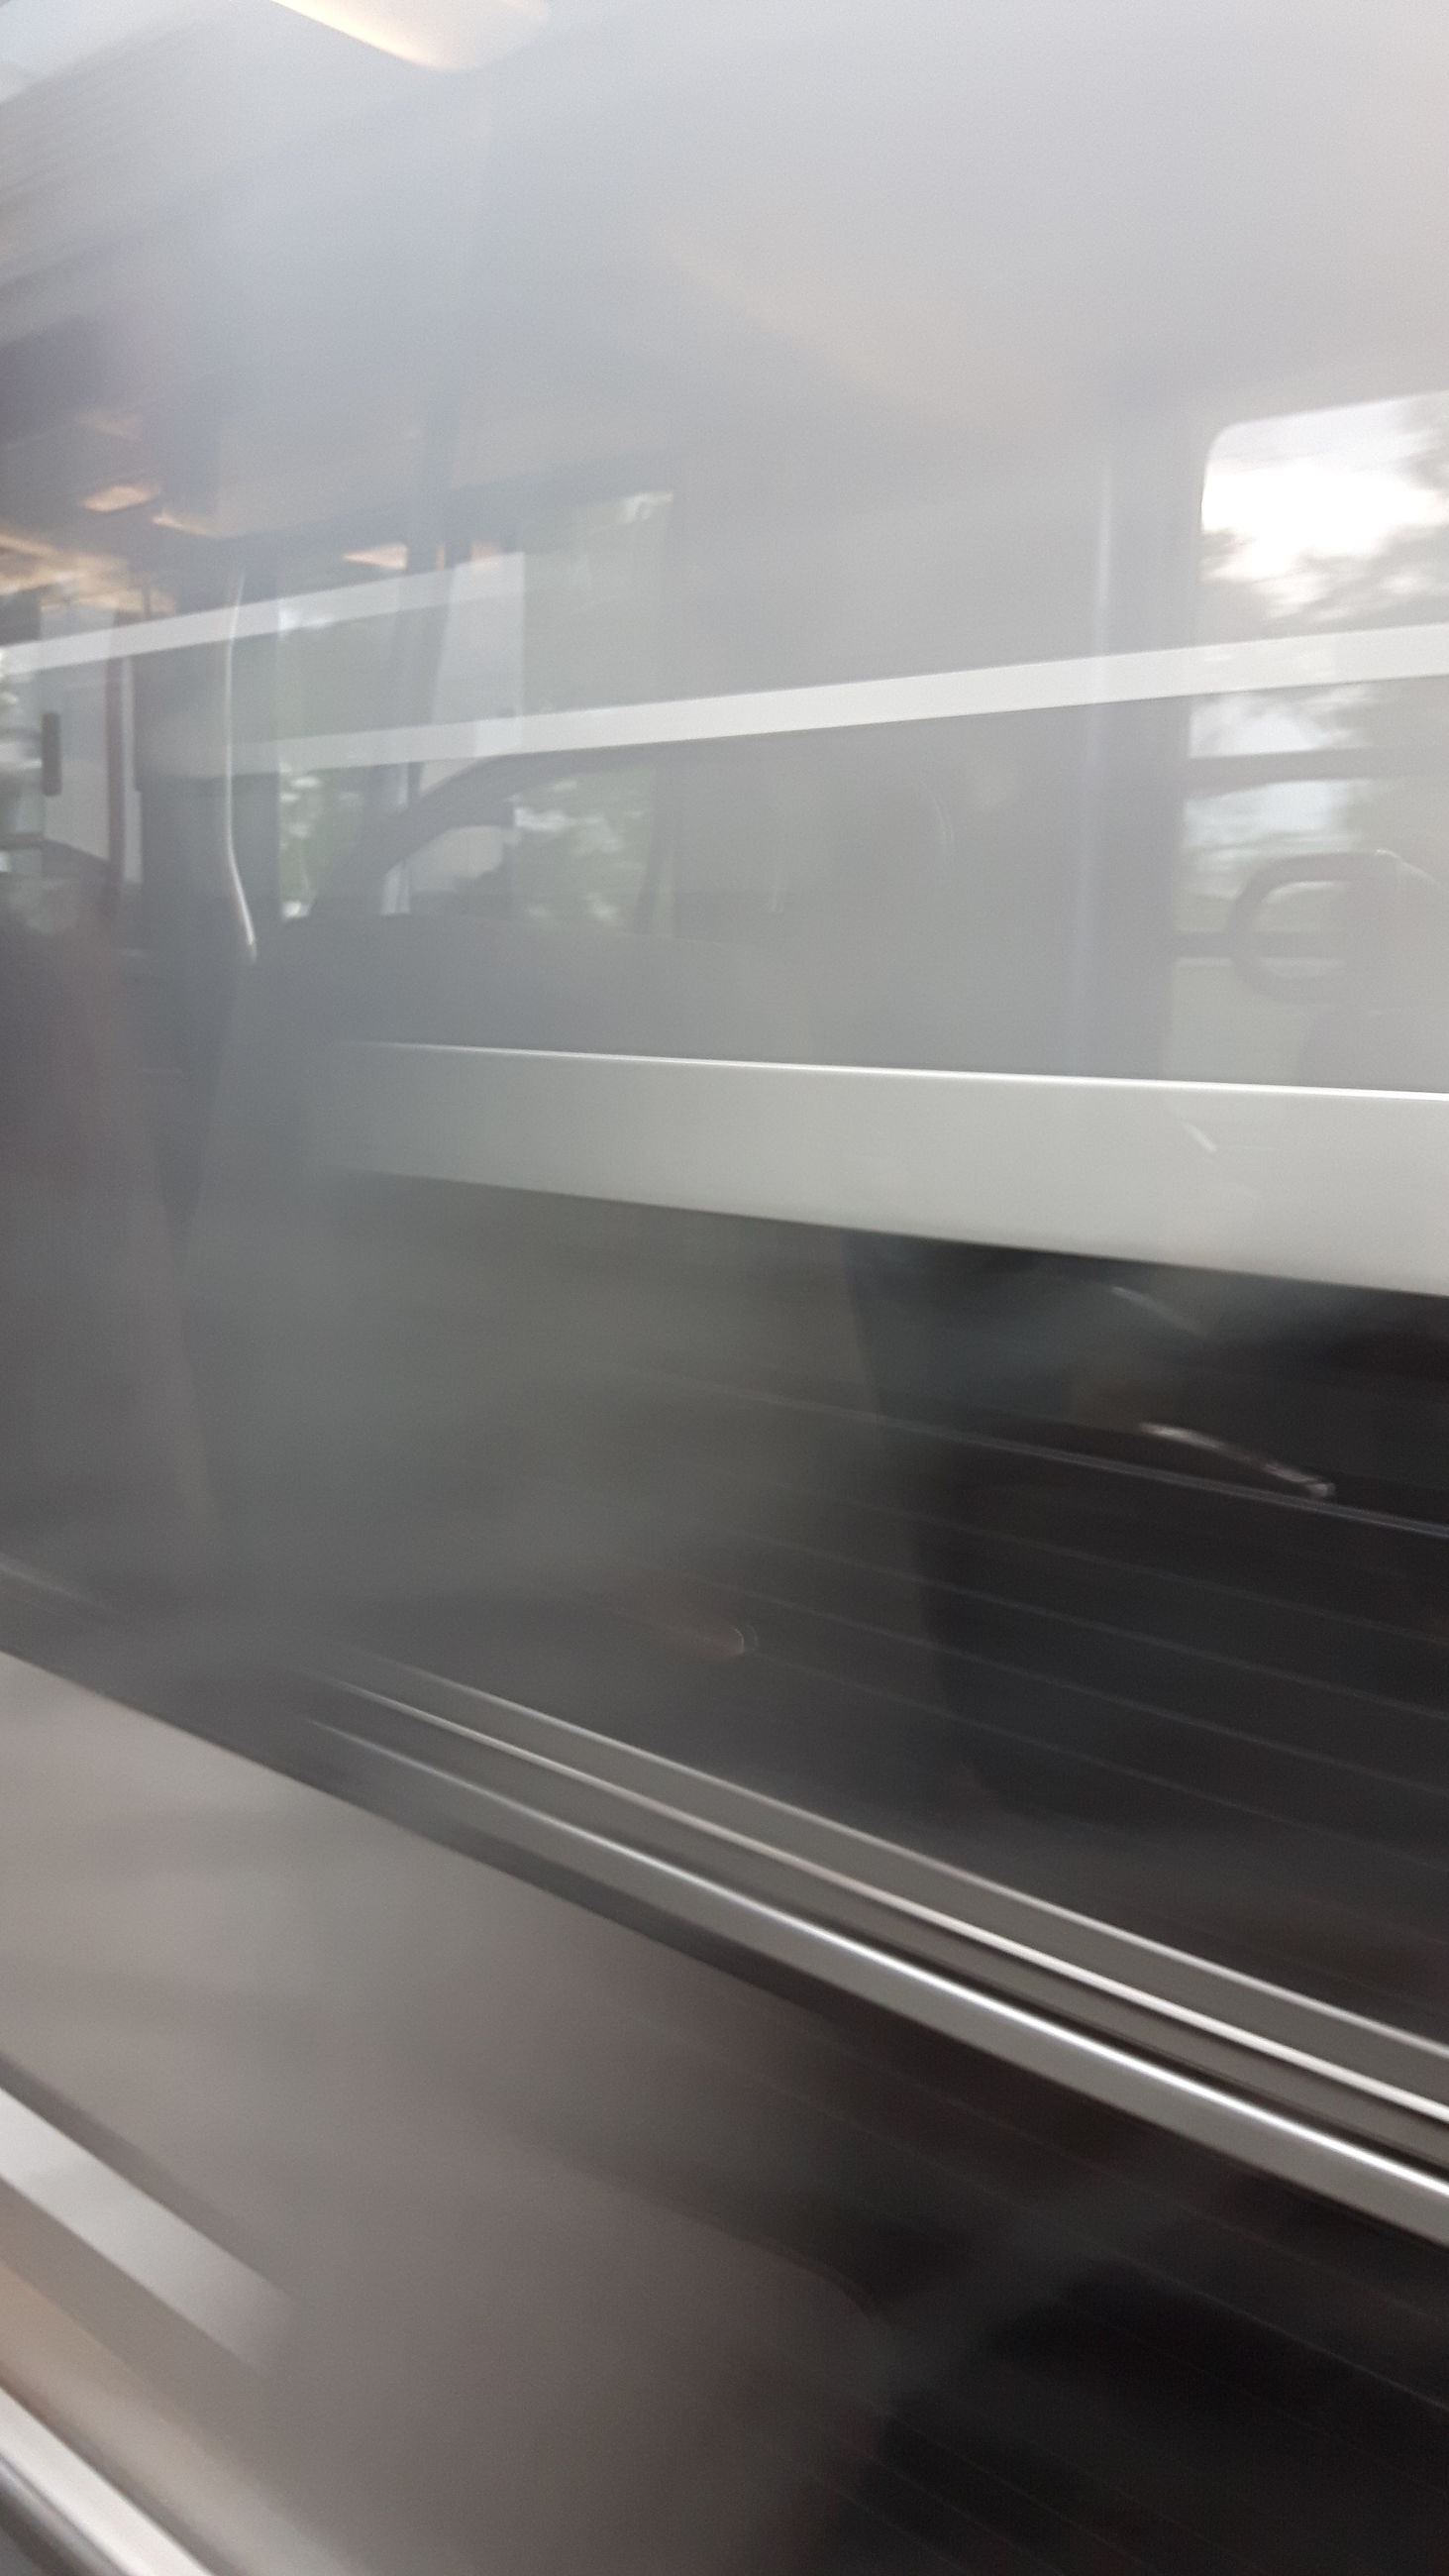 transportation, mode of transport, vehicle interior, glass - material, transparent, public transportation, window, train - vehicle, land vehicle, rail transportation, railroad track, on the move, travel, indoors, windshield, train, car, passenger train, motion, road